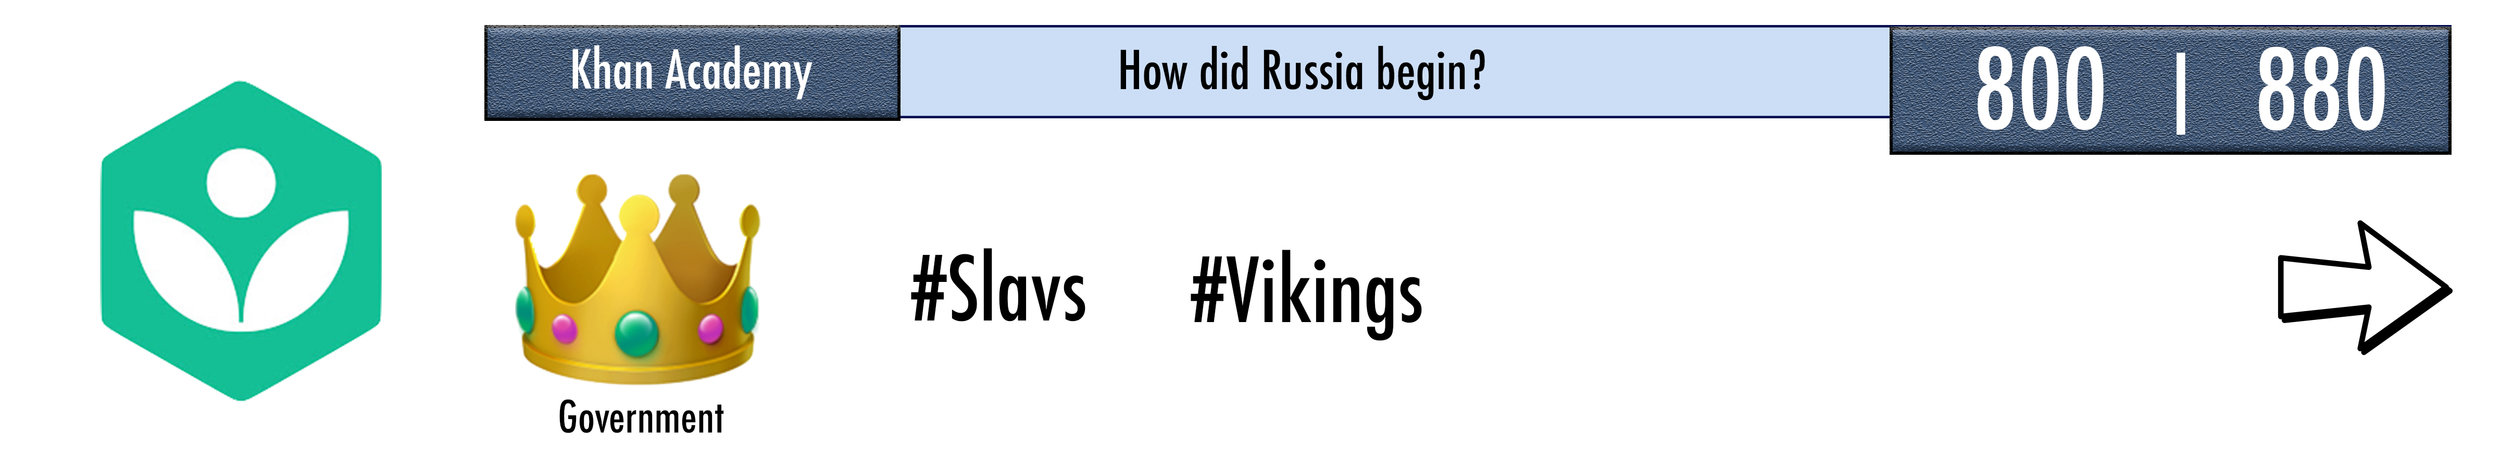 Whoa 800 - 880 Khan Academy How did Russia begin 2.jpg